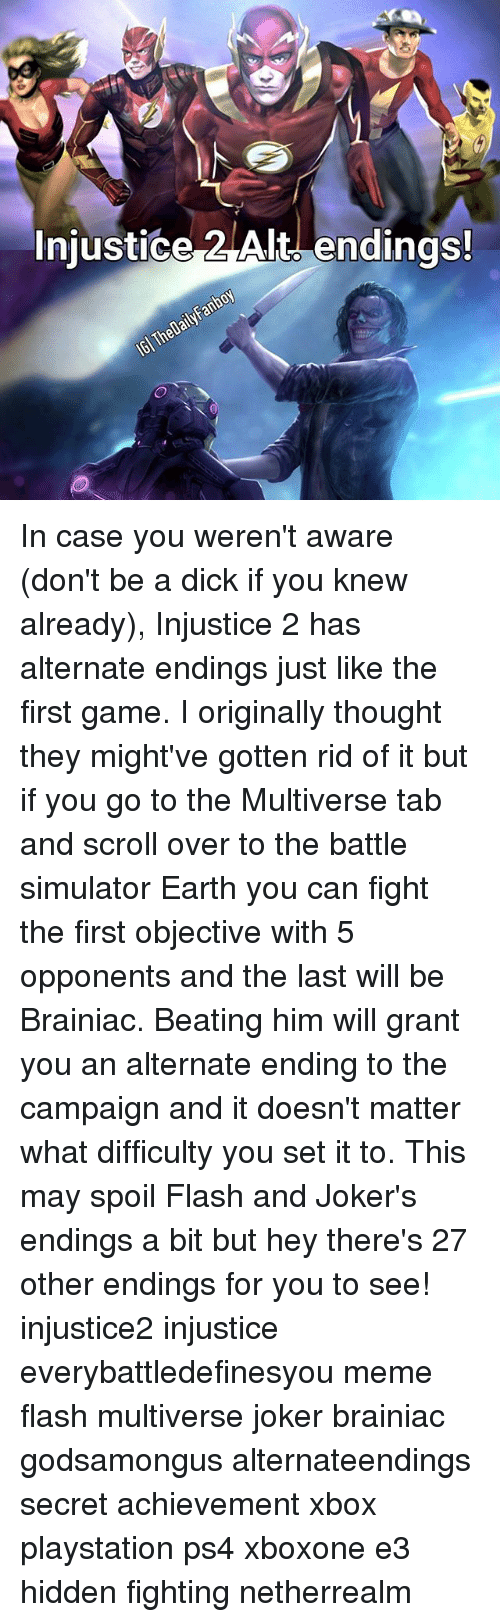 Joker, Meme, and Memes: Injustice Alt endings! In case you weren't aware (don't be a dick if you knew already), Injustice 2 has alternate endings just like the first game. I originally thought they might've gotten rid of it but if you go to the Multiverse tab and scroll over to the battle simulator Earth you can fight the first objective with 5 opponents and the last will be Brainiac. Beating him will grant you an alternate ending to the campaign and it doesn't matter what difficulty you set it to. This may spoil Flash and Joker's endings a bit but hey there's 27 other endings for you to see! injustice2 injustice everybattledefinesyou meme flash multiverse joker brainiac godsamongus alternateendings secret achievement xbox playstation ps4 xboxone e3 hidden fighting netherrealm